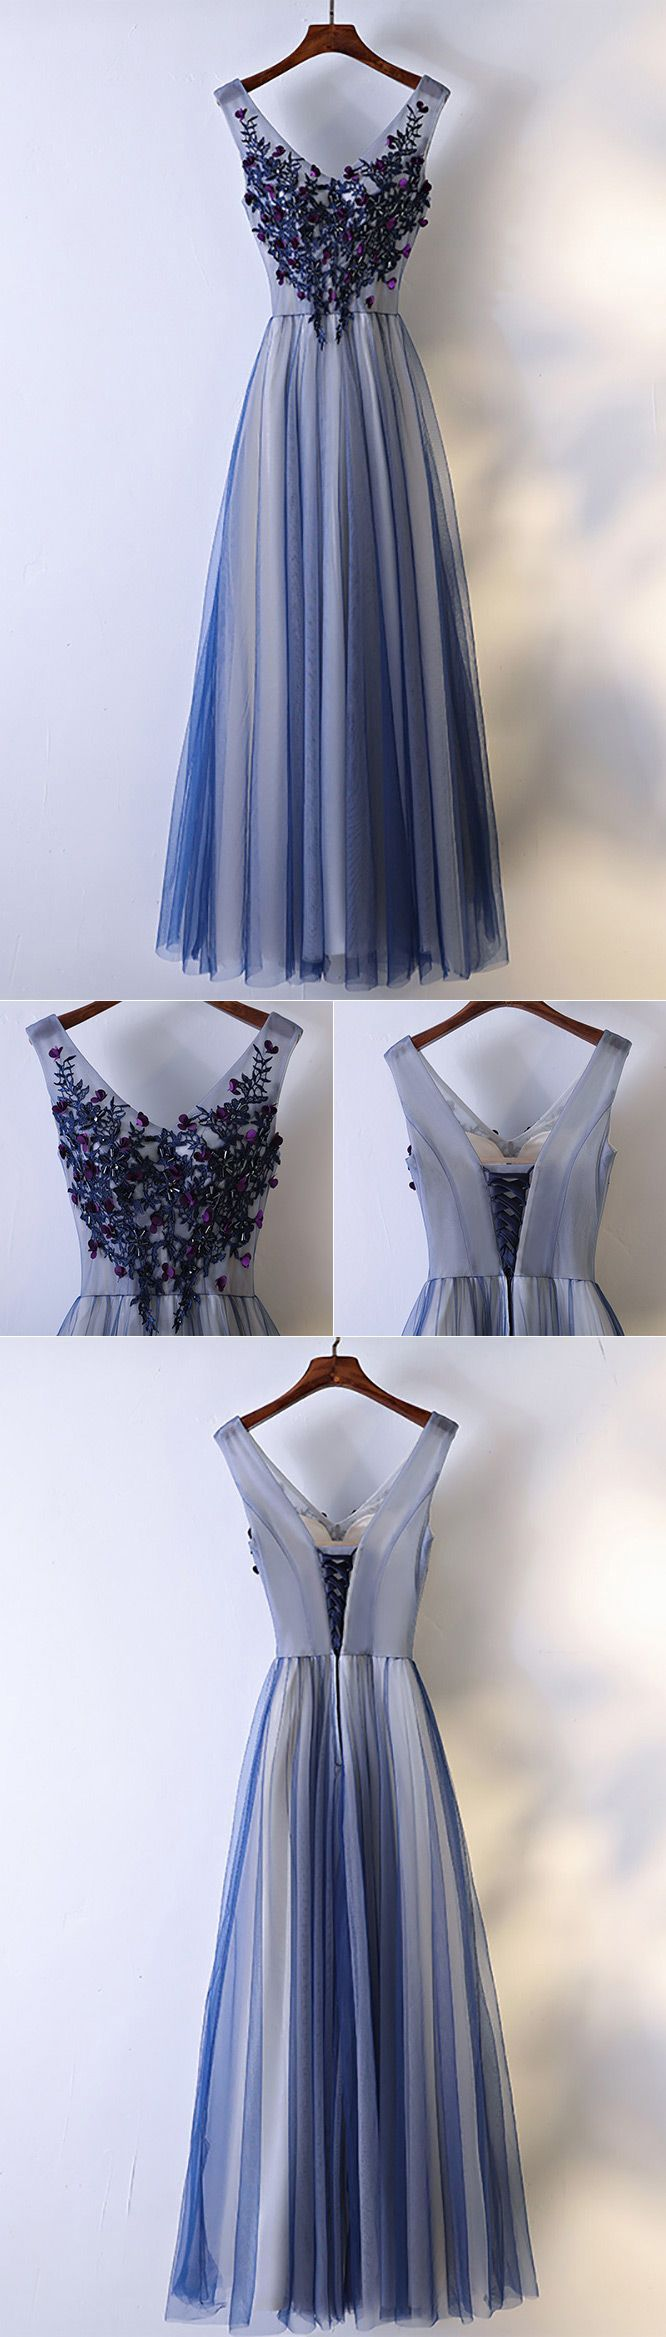 Unique navy blue long tulle prom dress vneck sleeveless myx